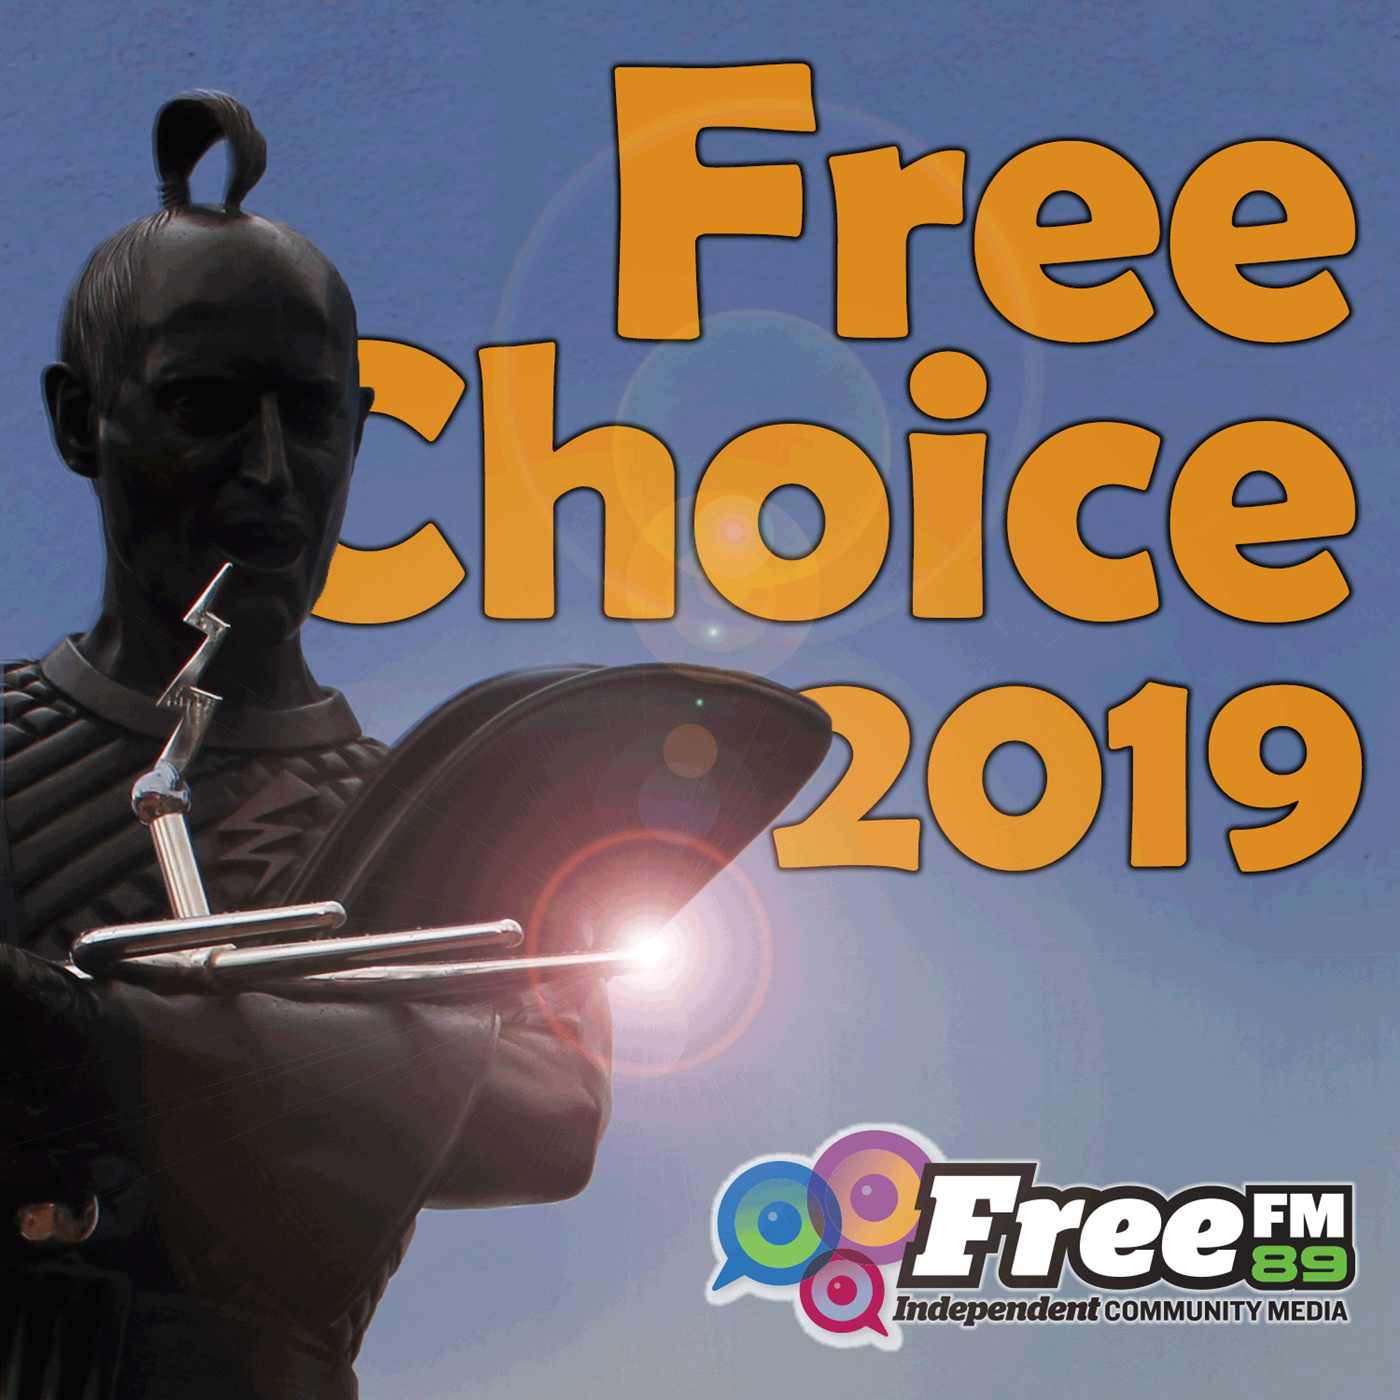 https://cdn.accessradio.org/StationFolder/freefm89/Images/Free_Choice_2019.png